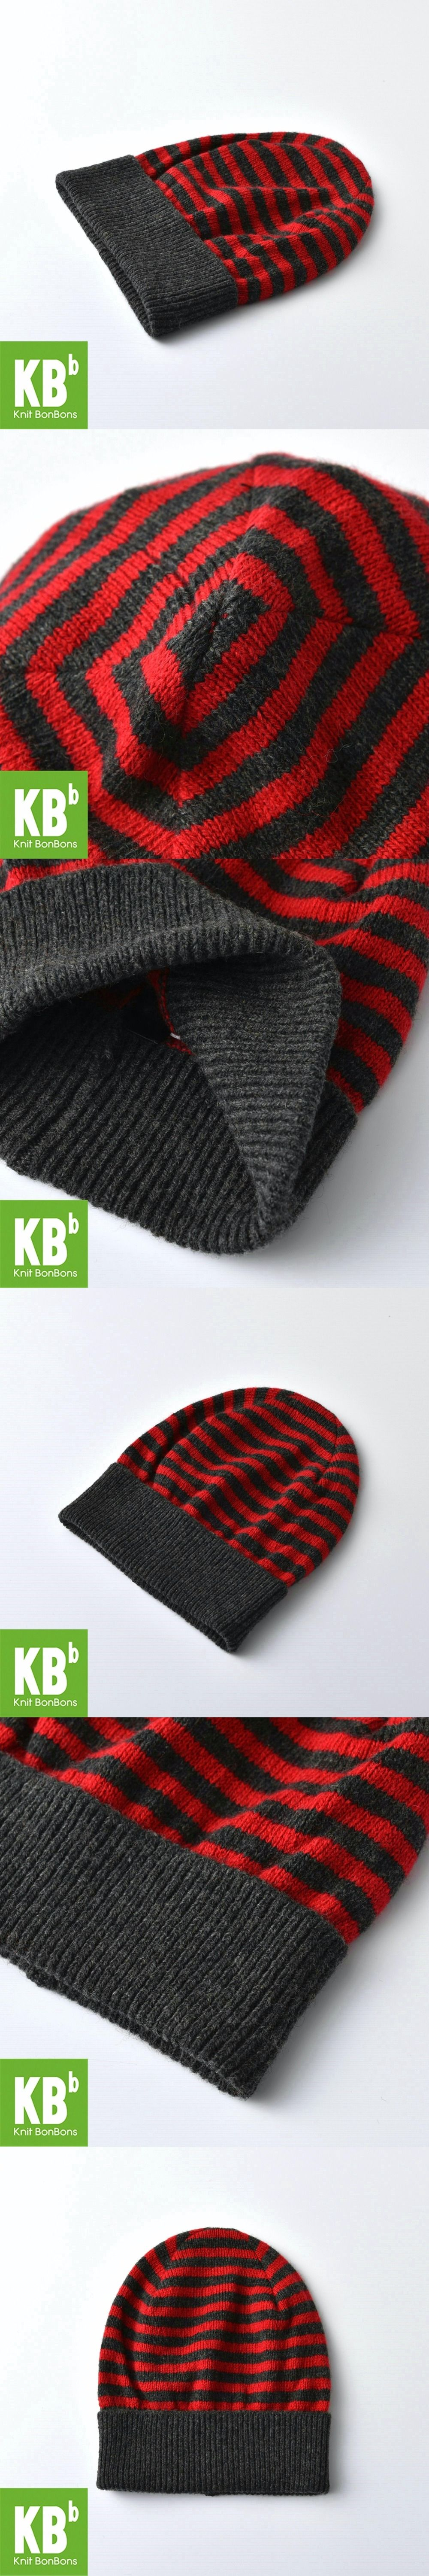 2017 KBB Spring Winter Charcoal Red Classic Men Women Striped ...